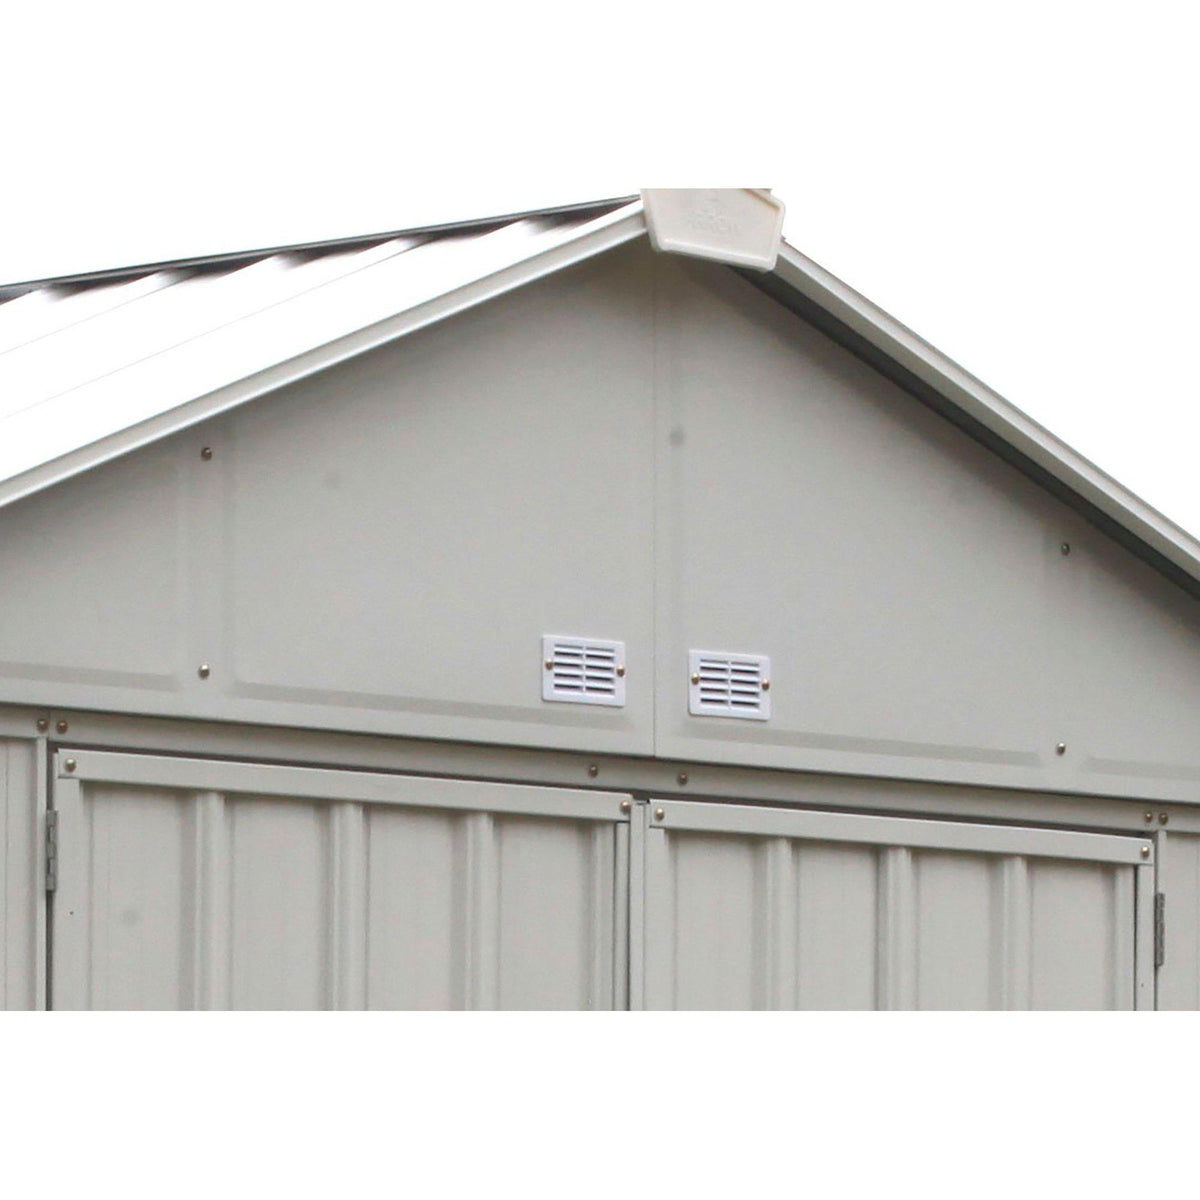 Arrow EZEE Shed High Gable Steel Storage Shed, Cream, 8 x 7 ft.